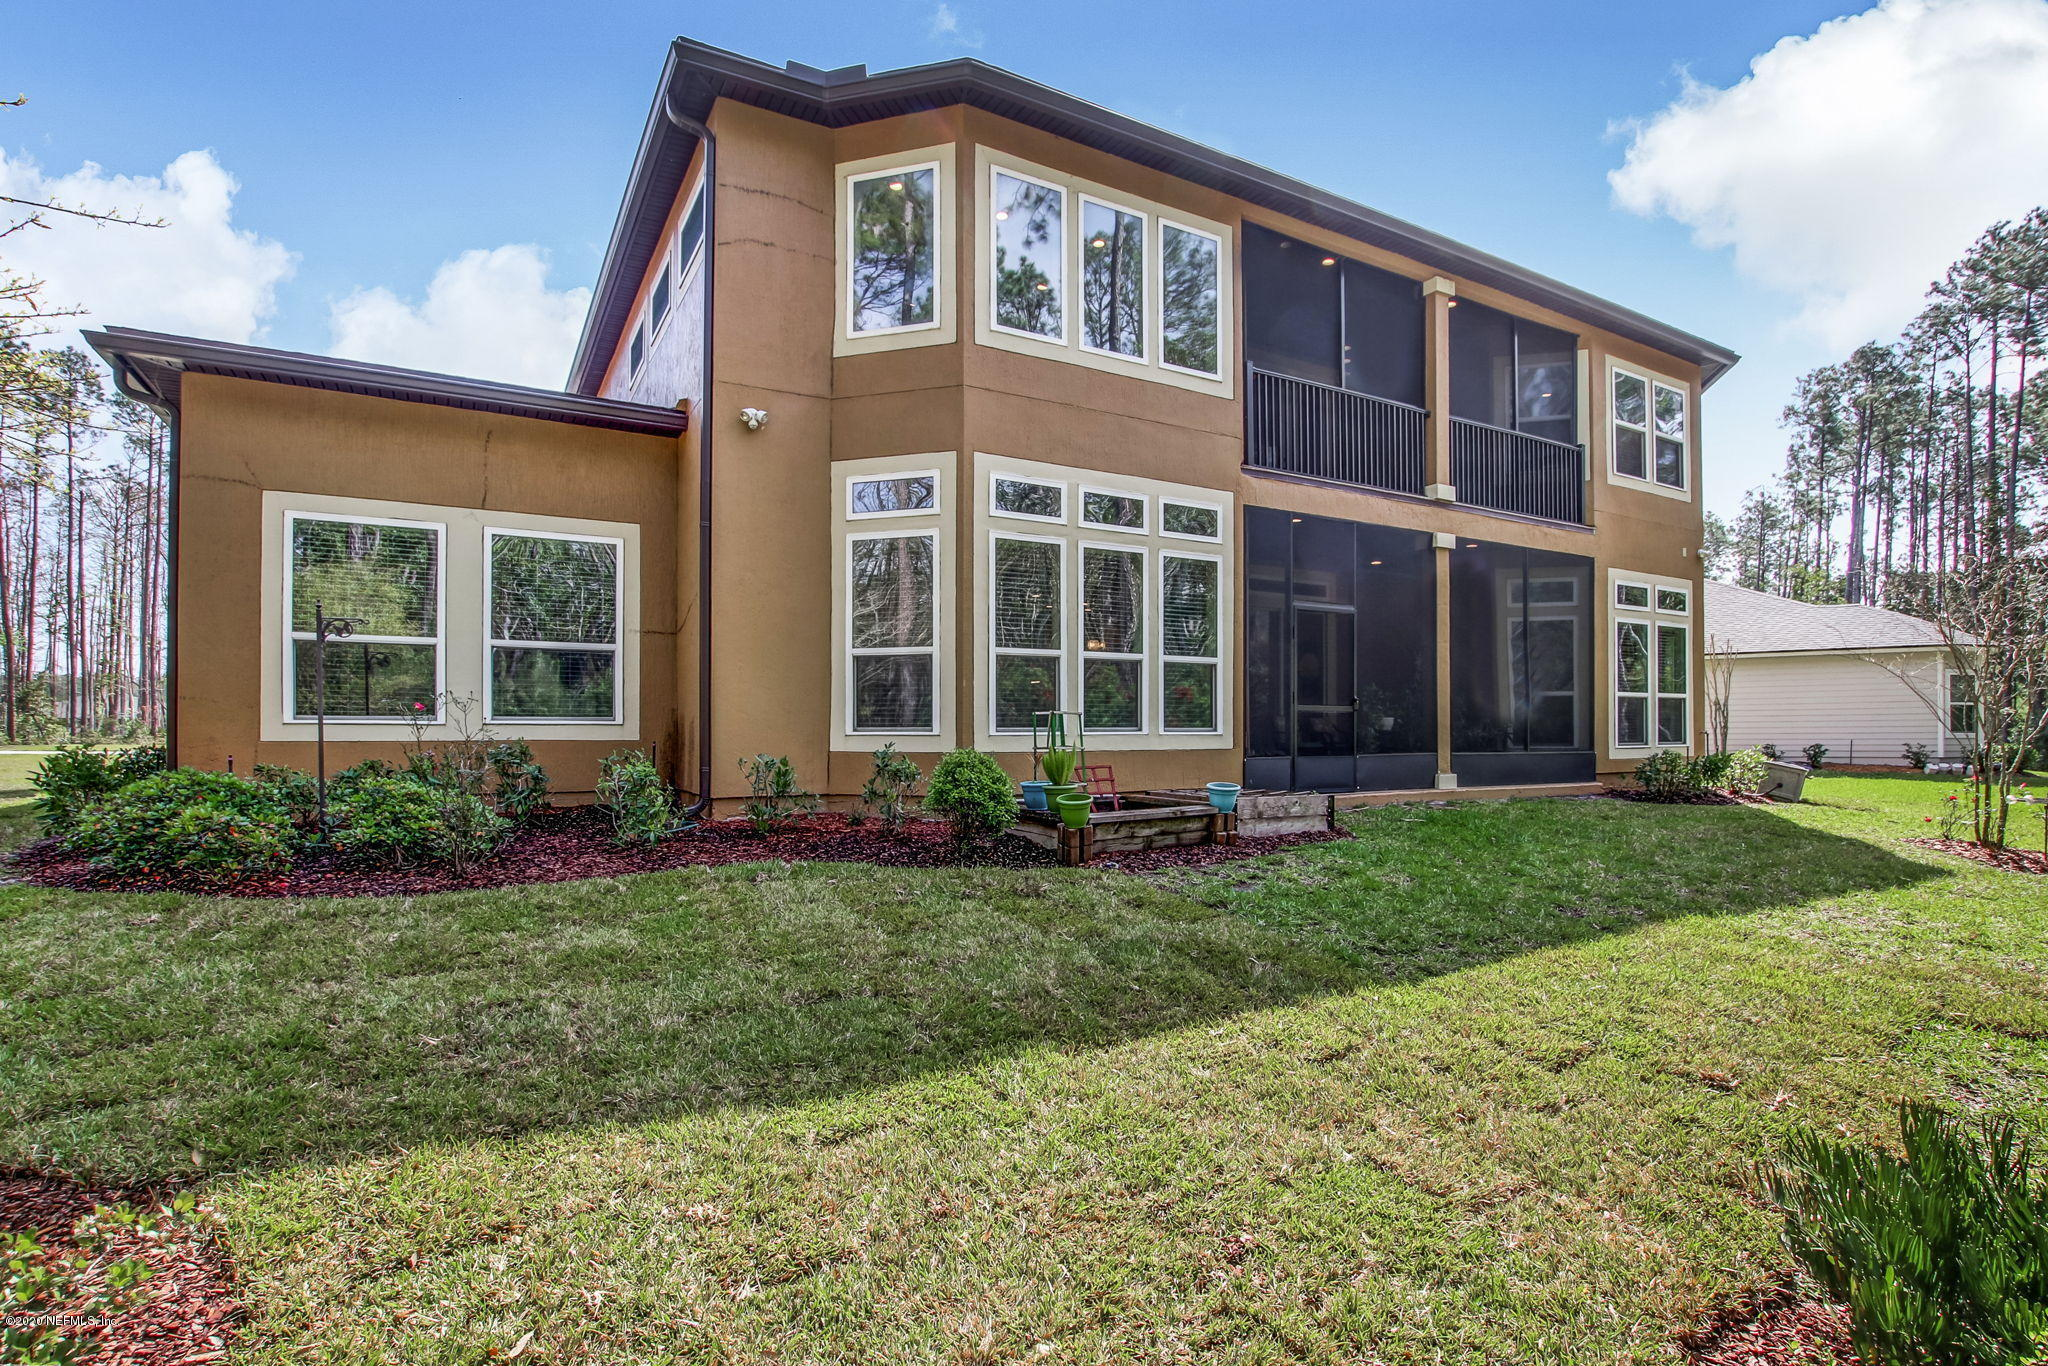 278 KIWI PALM, PONTE VEDRA, FLORIDA 32081, 5 Bedrooms Bedrooms, ,5 BathroomsBathrooms,Residential,For sale,KIWI PALM,1044196